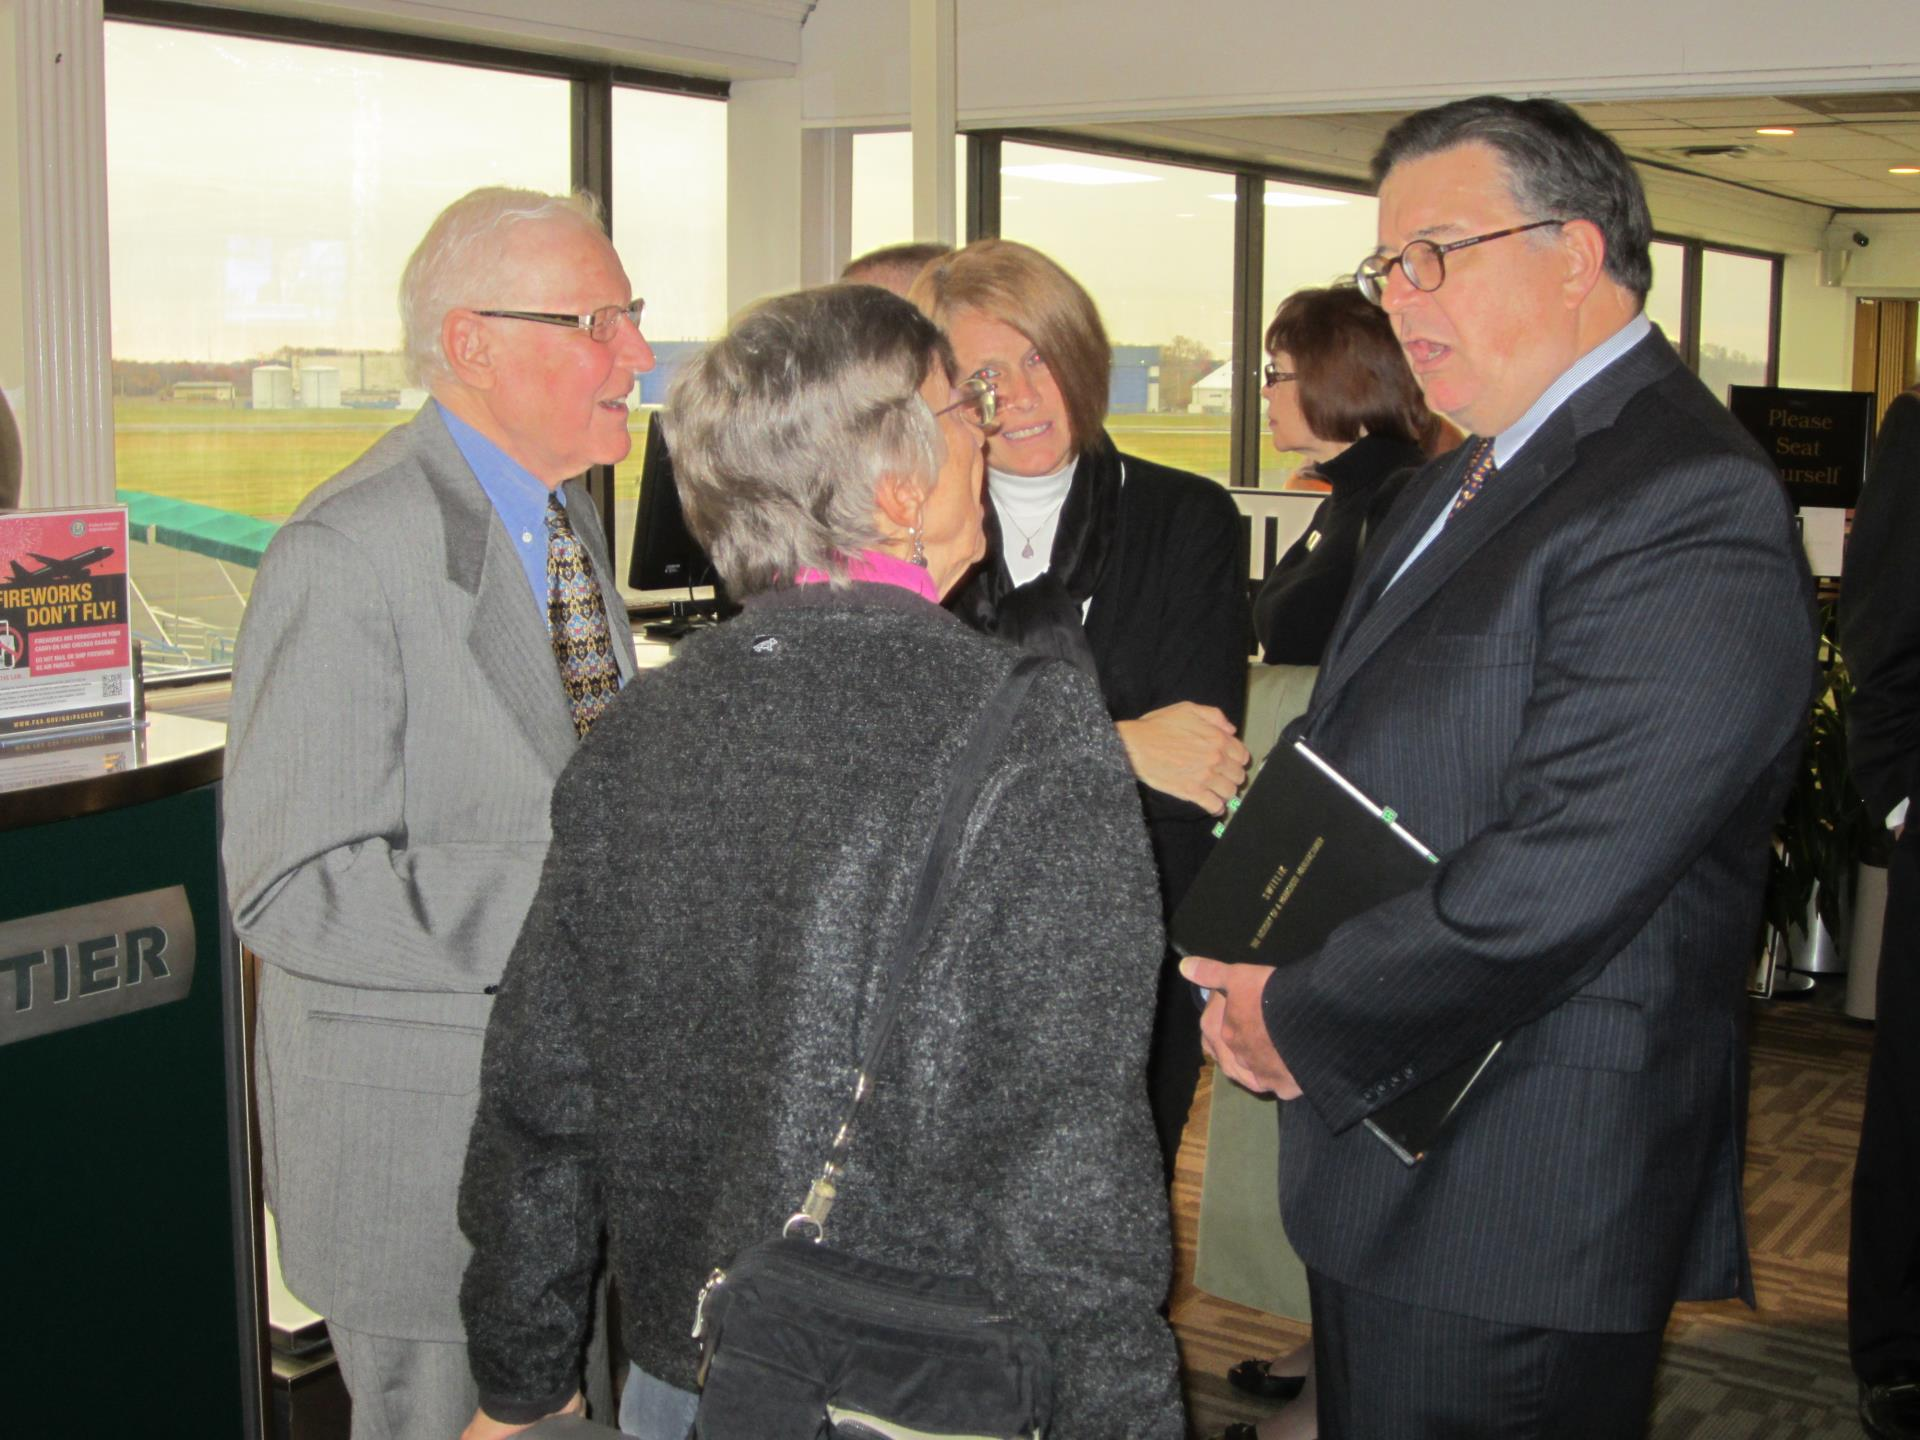 Trenton-Mercer Airport 85th anniversary, County Executive Hughes meets with constituents